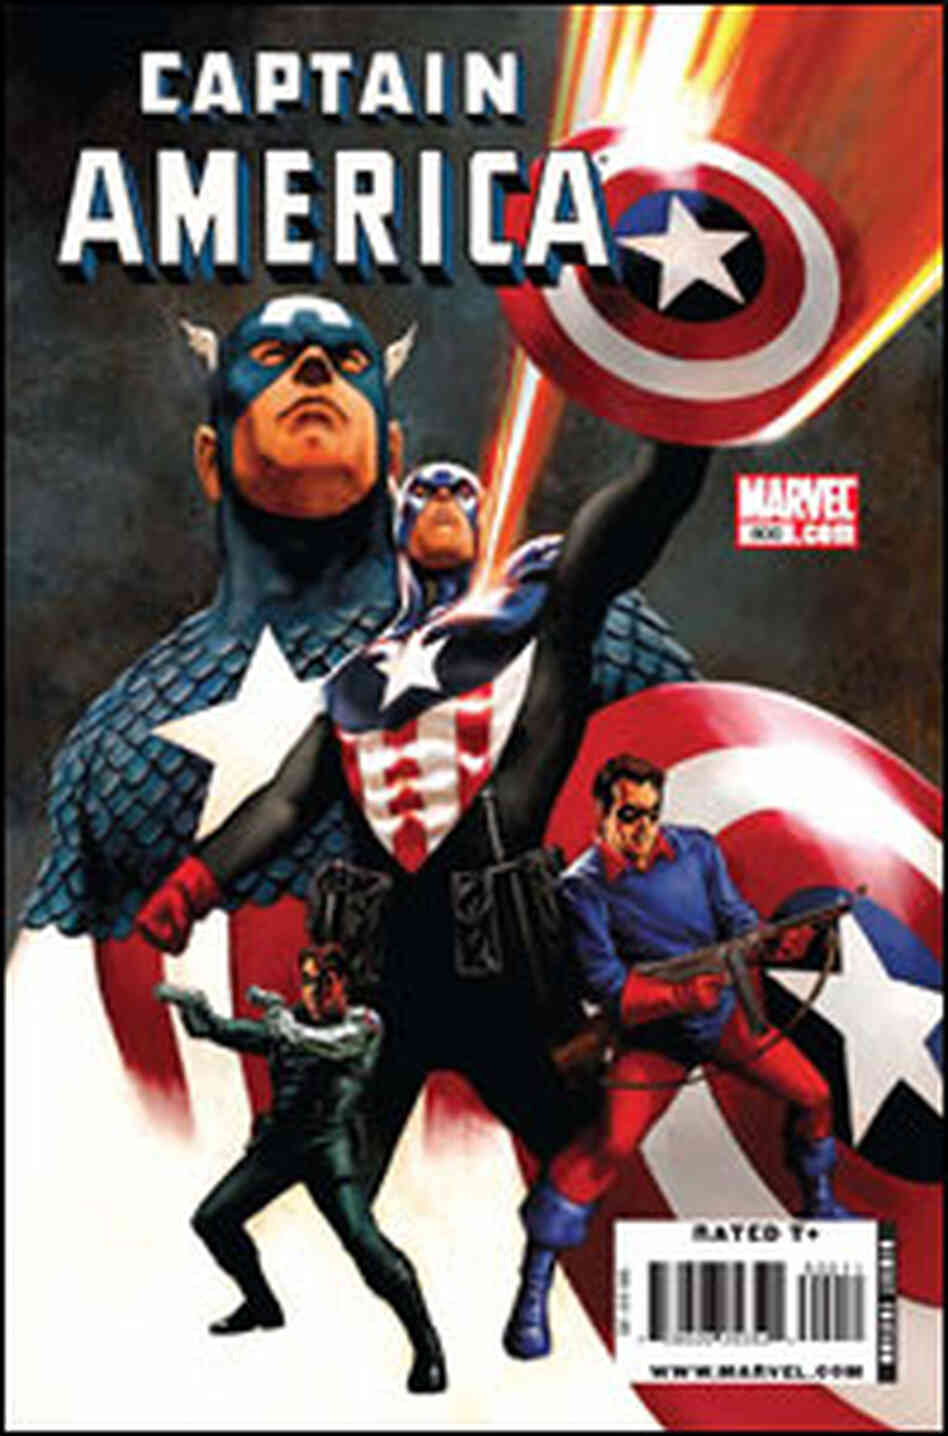 The cover of an upcoming issue of Captain America